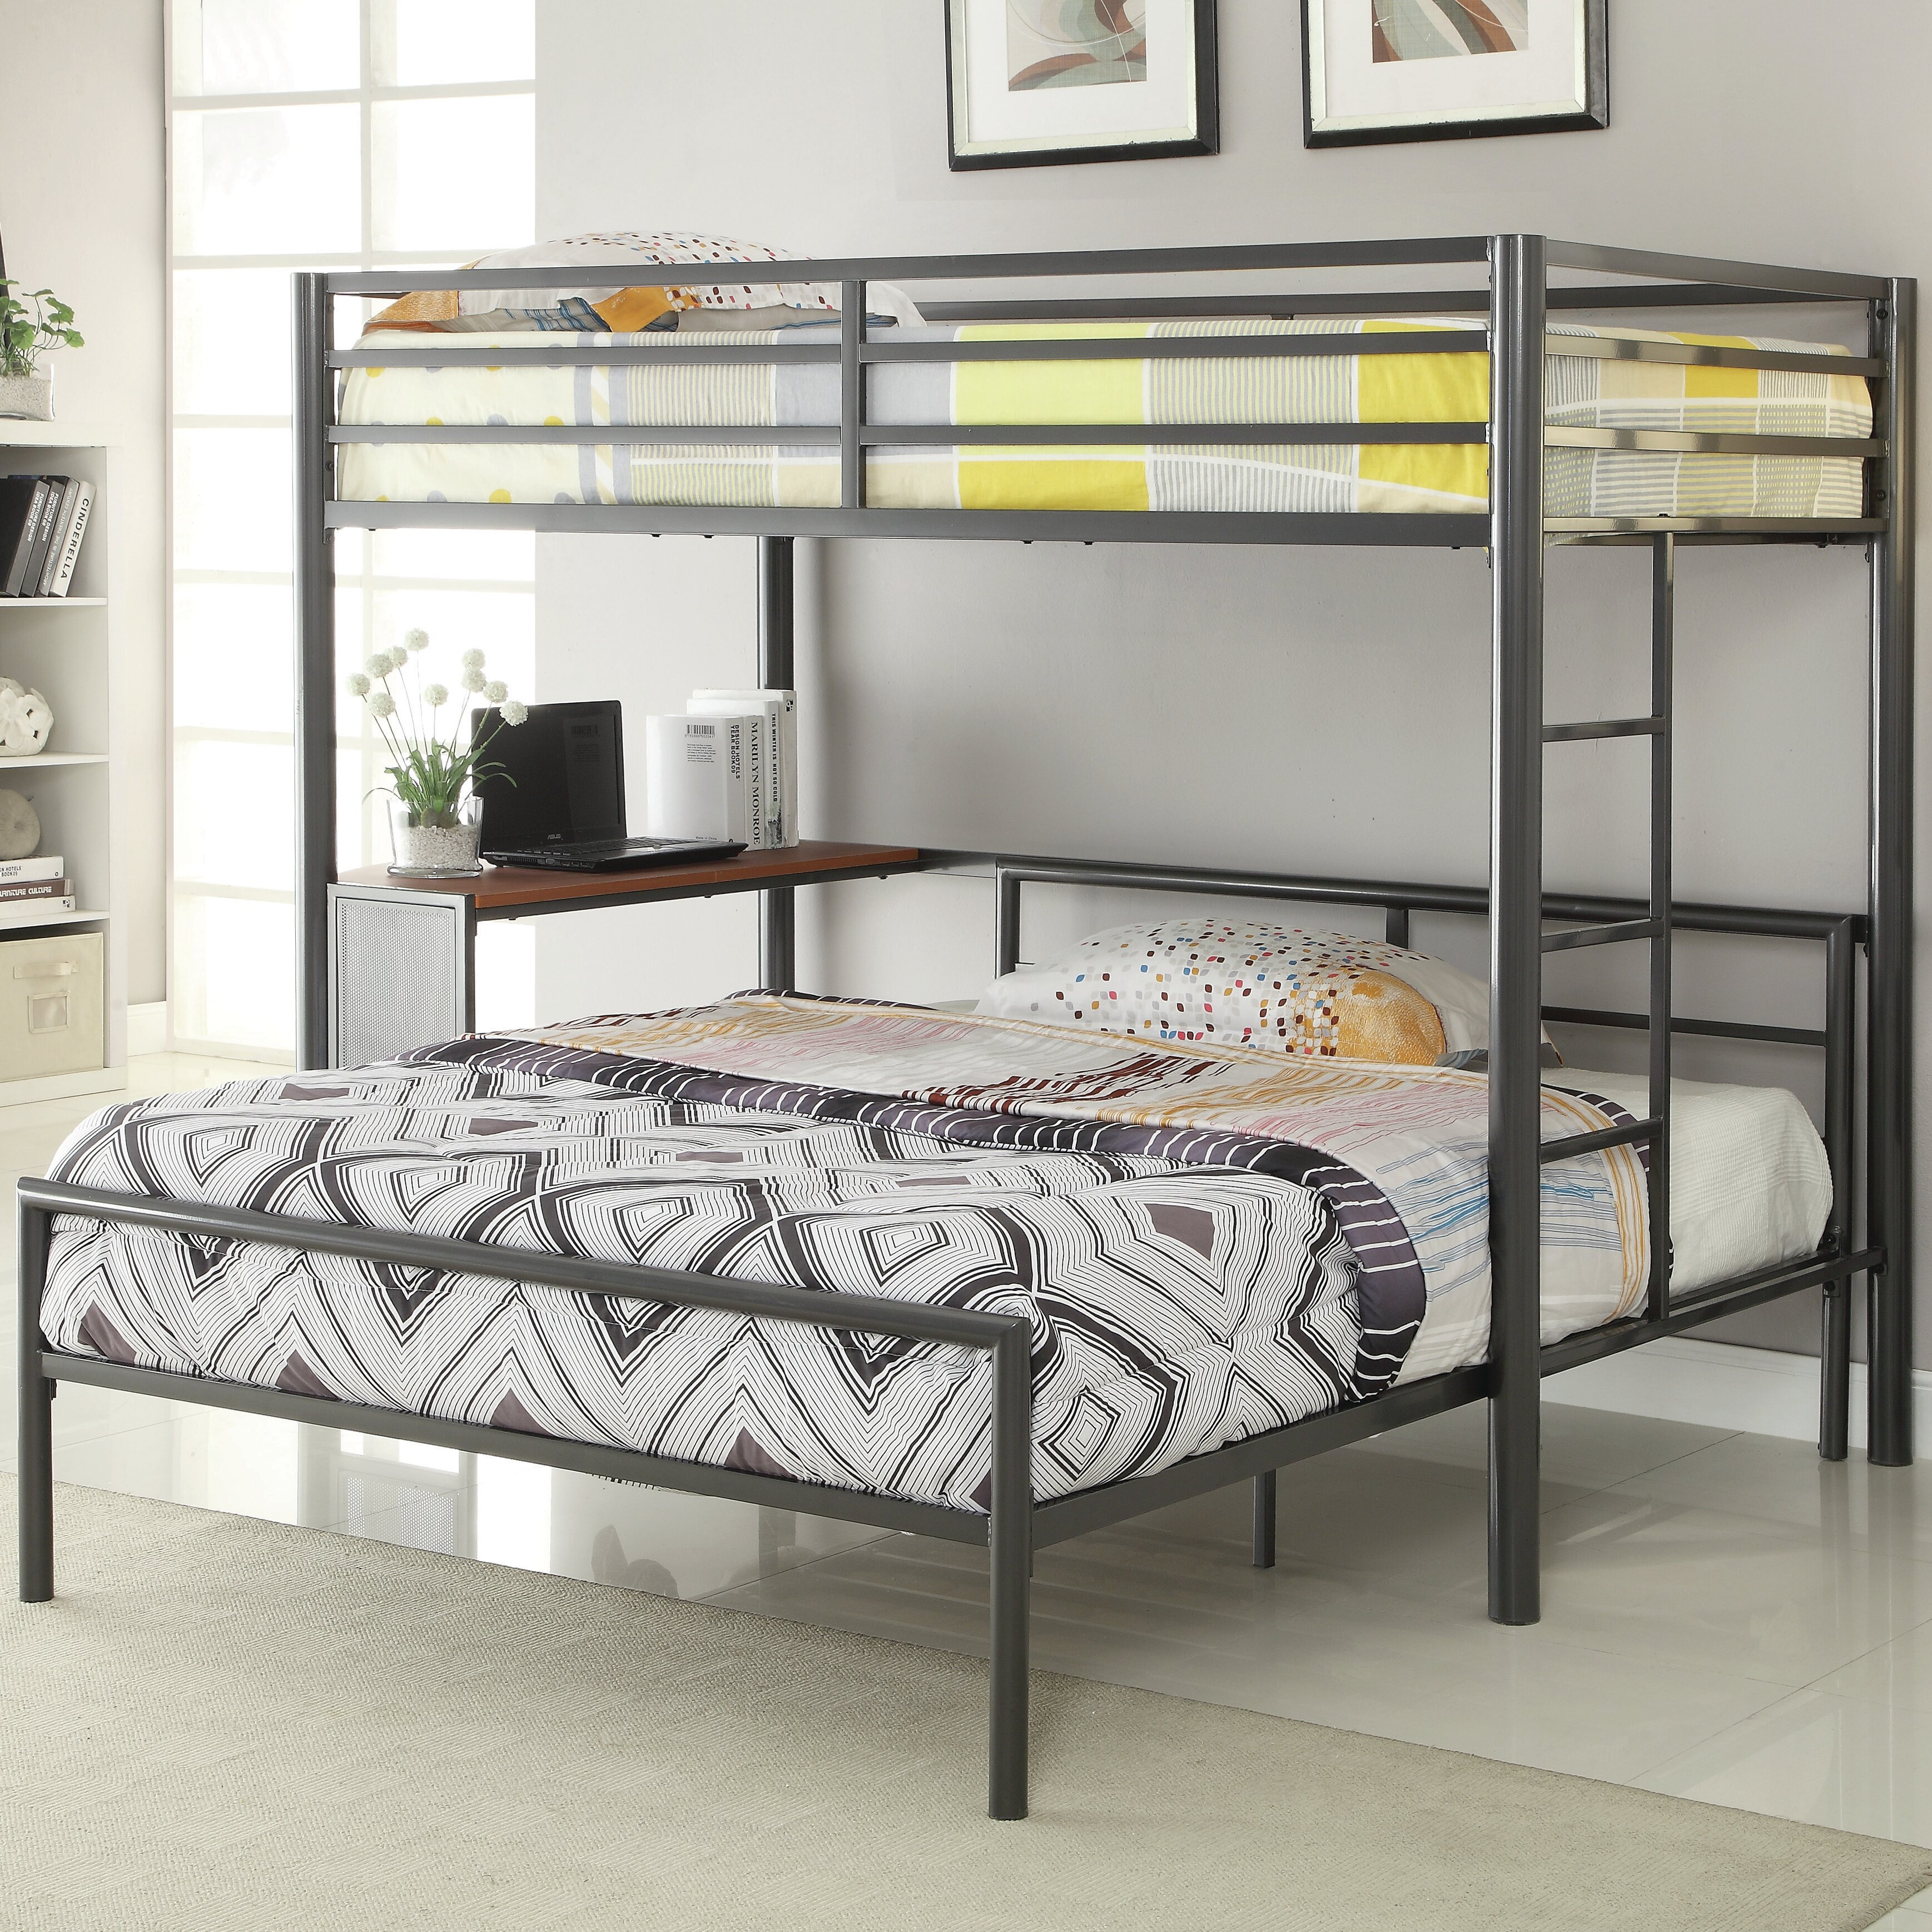 Picture of: Harriet Bee Nedra Twin Over Full L Shaped Bunk Bed Reviews